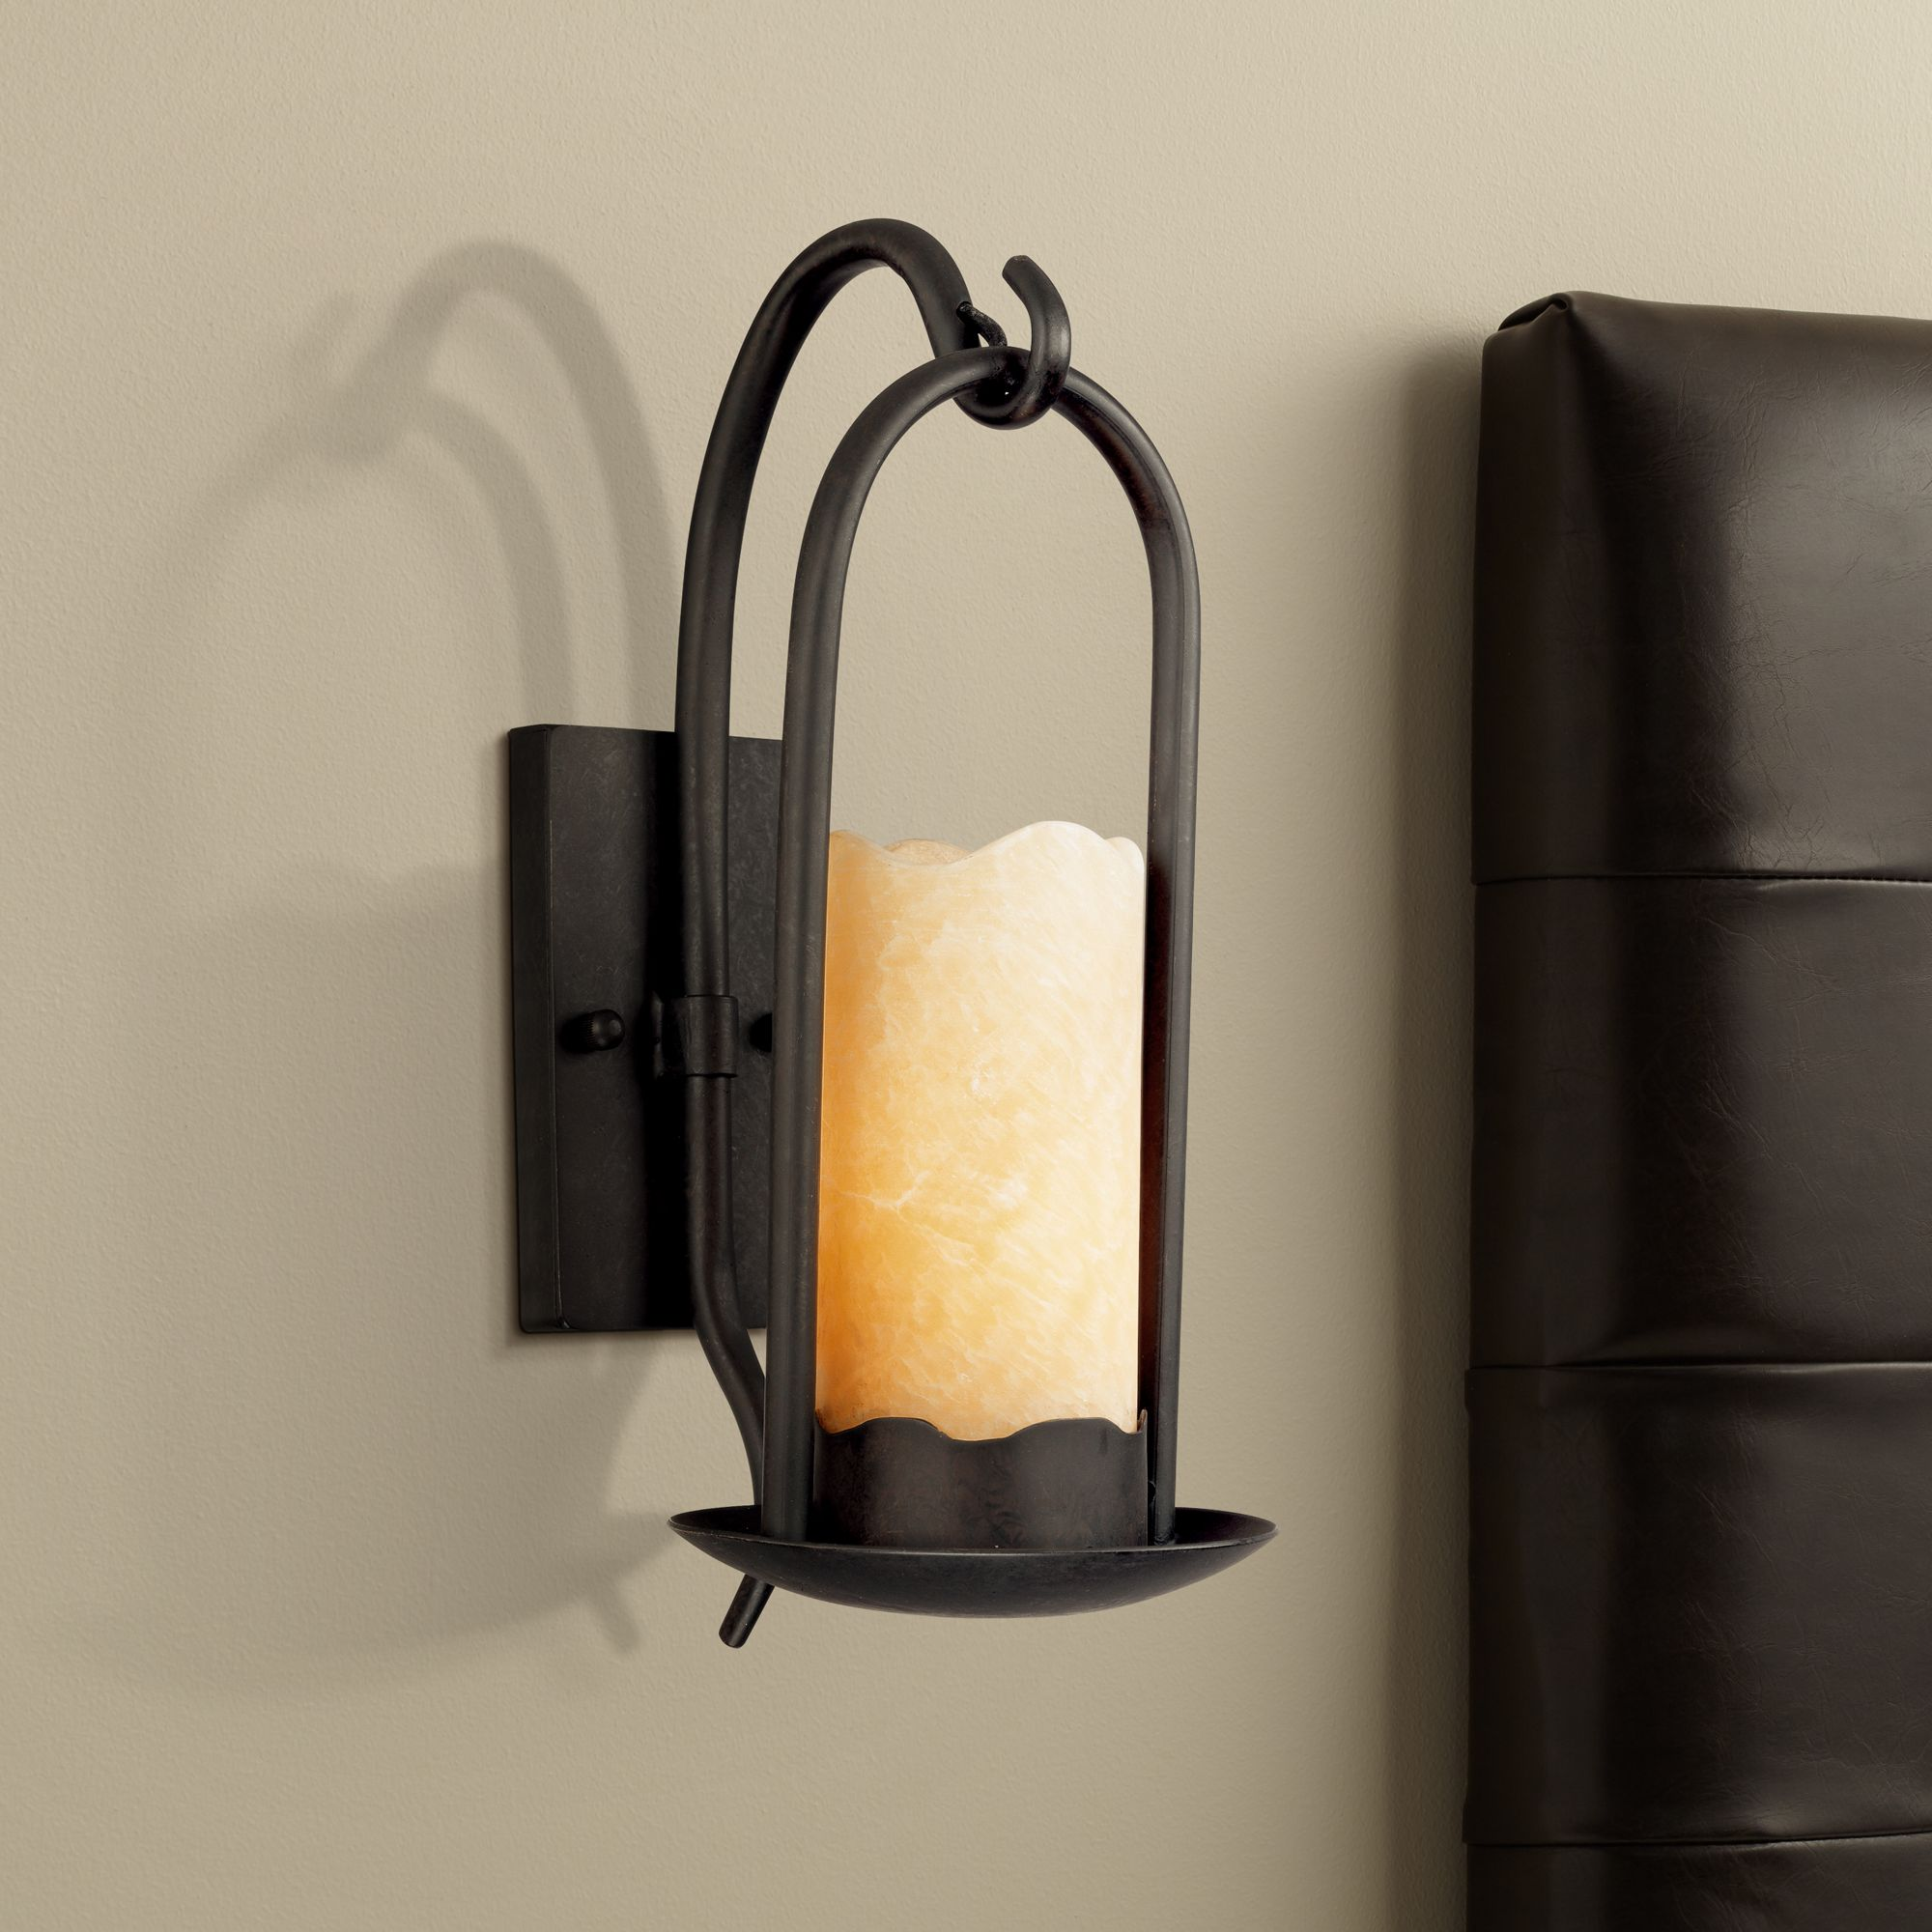 Charmant Hanging Onyx Faux Candle Wall Sconce